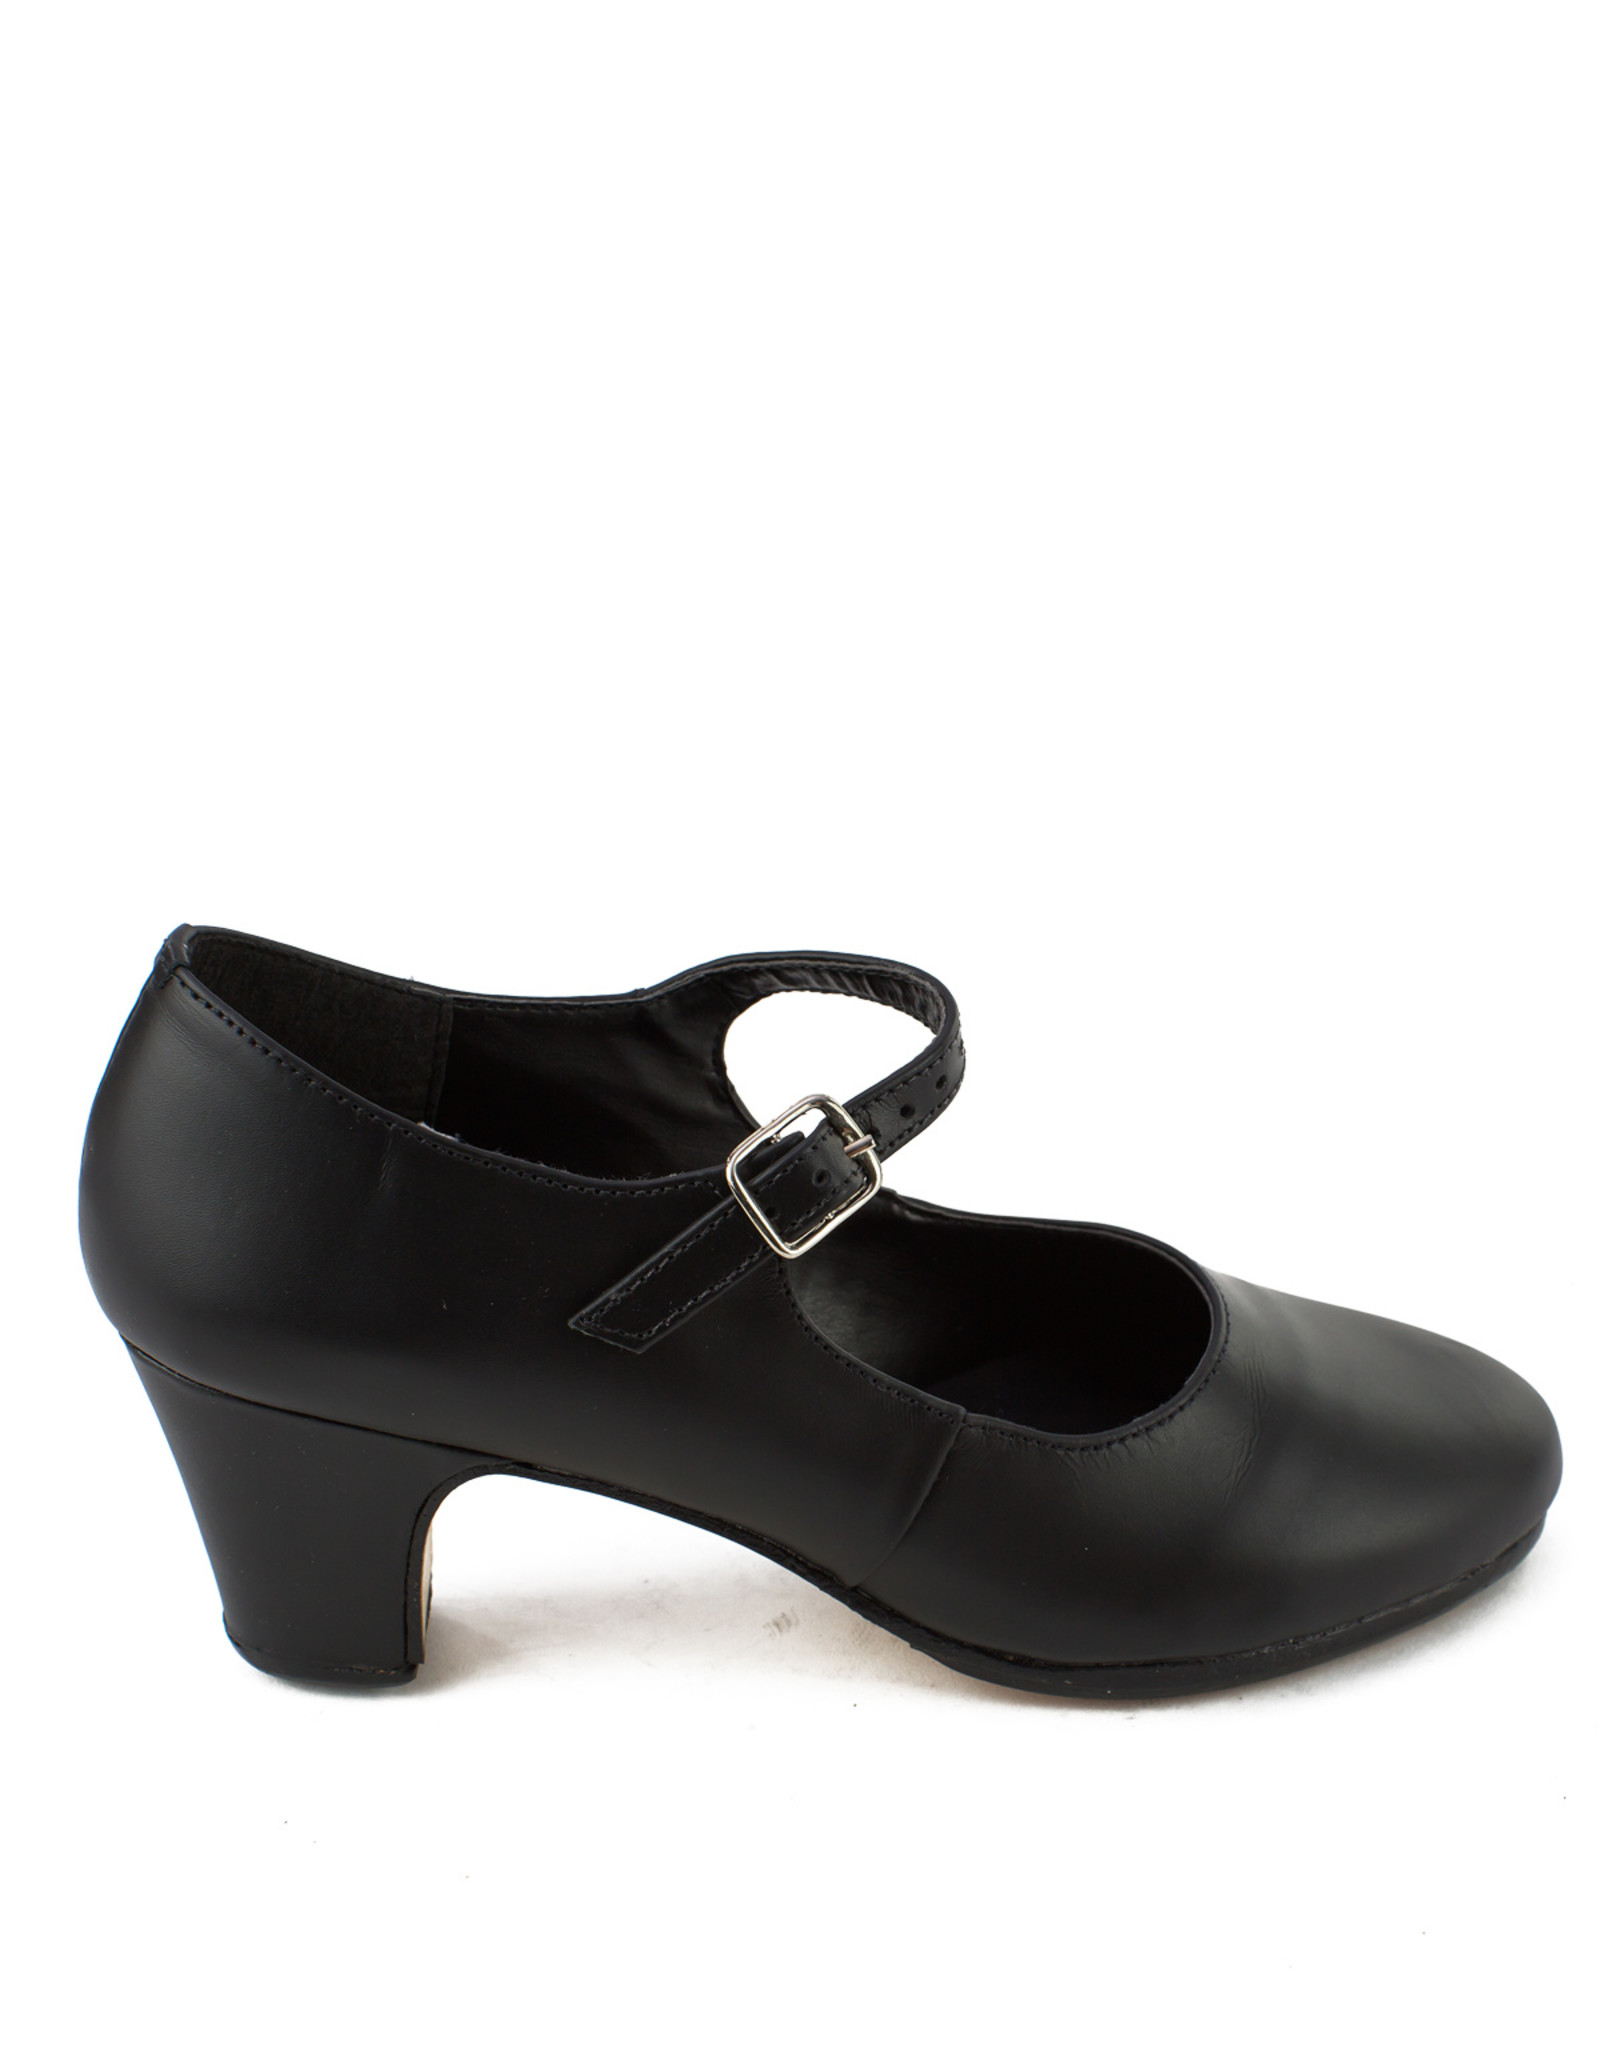 SO DANCA MARISOL CHAUSSURES DE FLAMENCO (FL12)